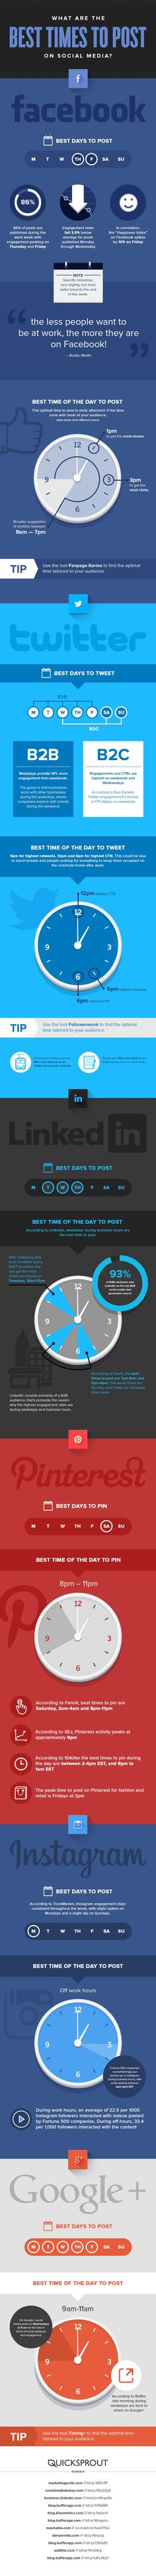 Did you know that the best days to post on Facebook are Thursdays and Fridays? #SocialMedia